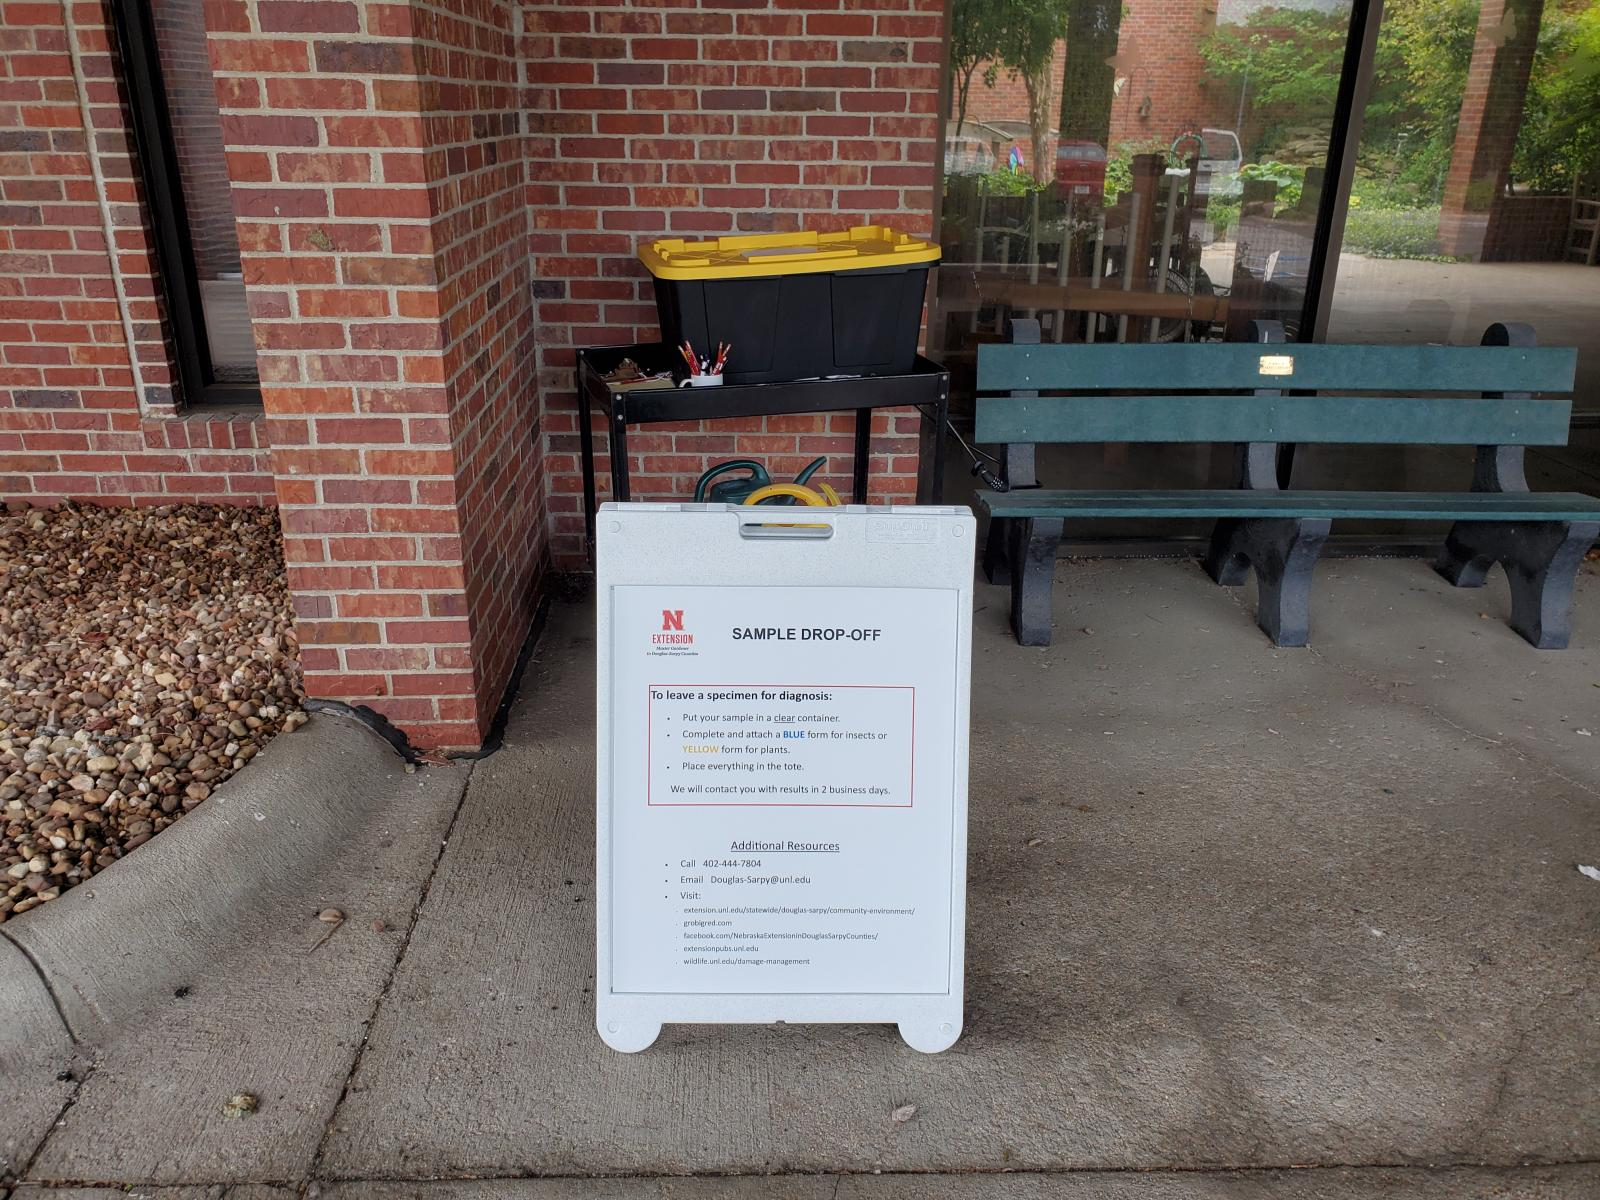 Sample Drop-off Box and Sandwich Board